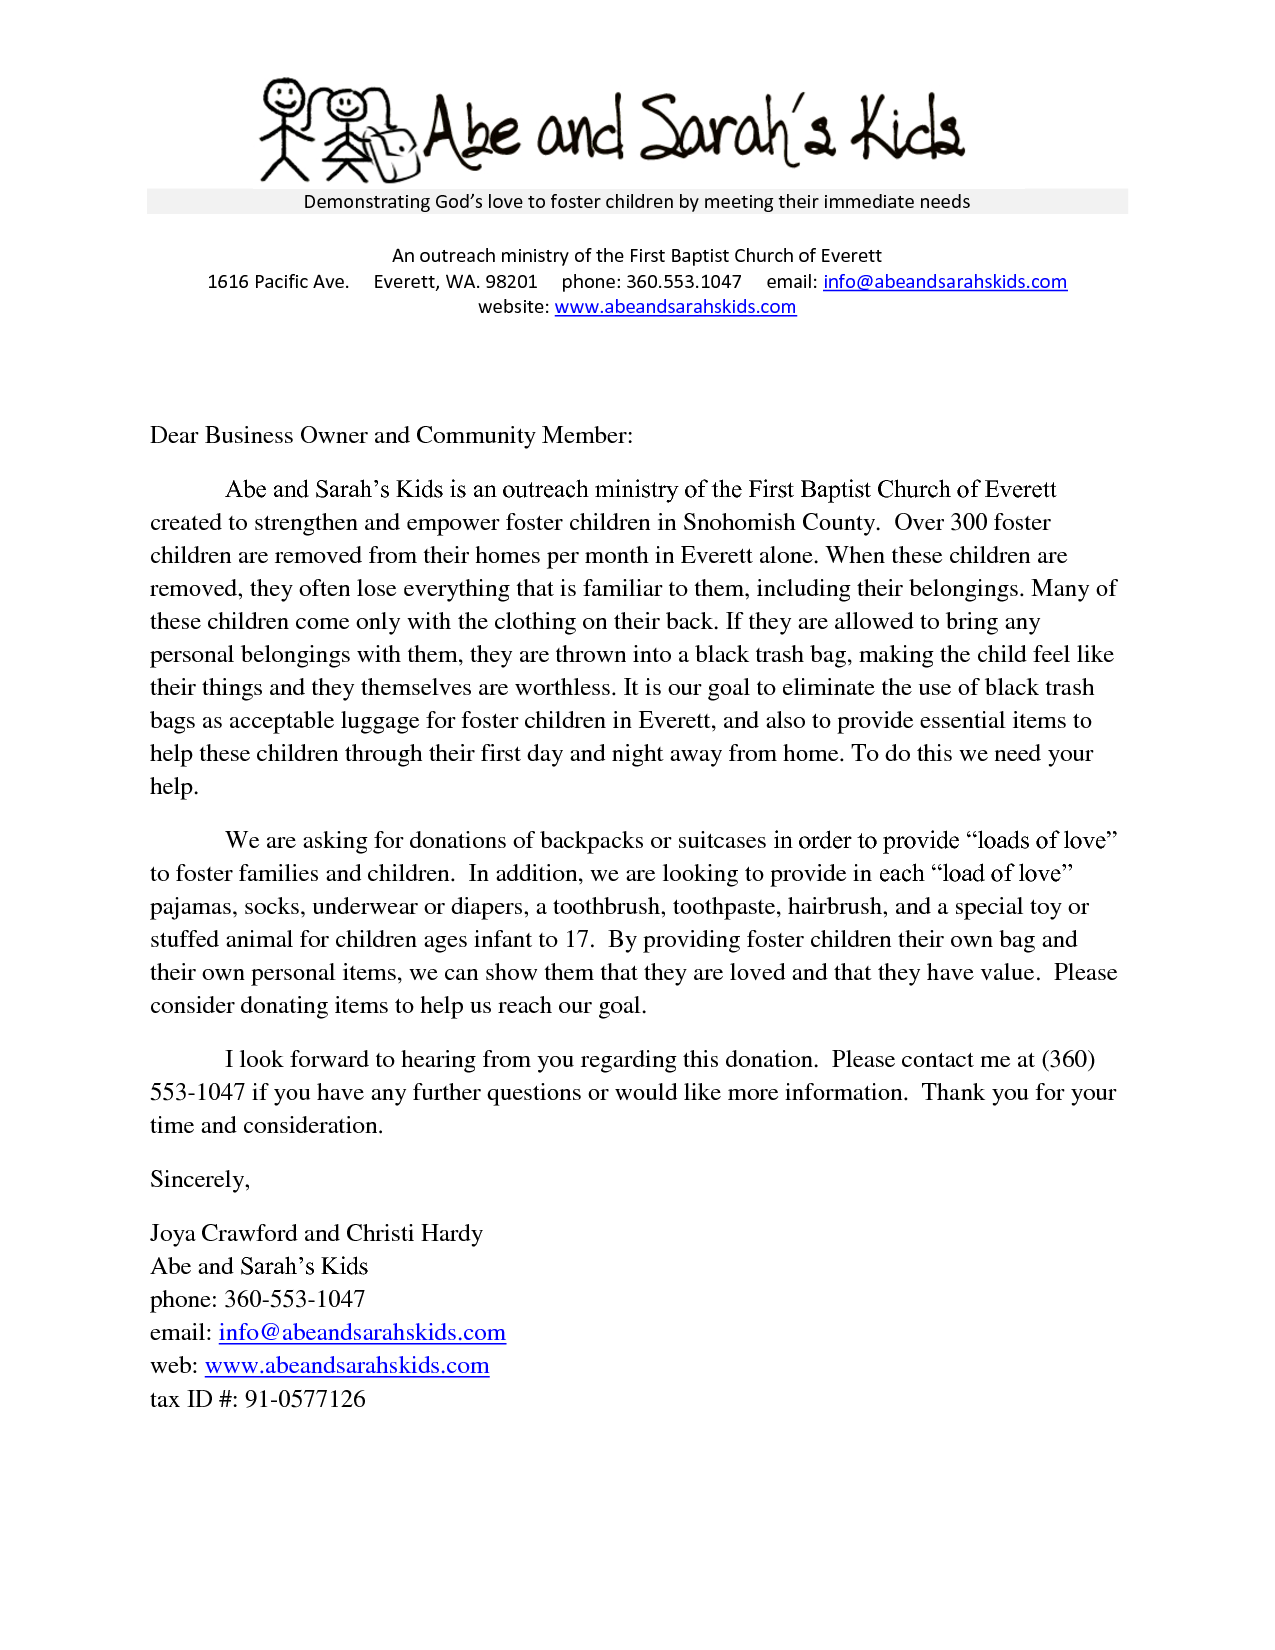 Sample Church Donation Letter | Donation Request Letter (Word Doc)